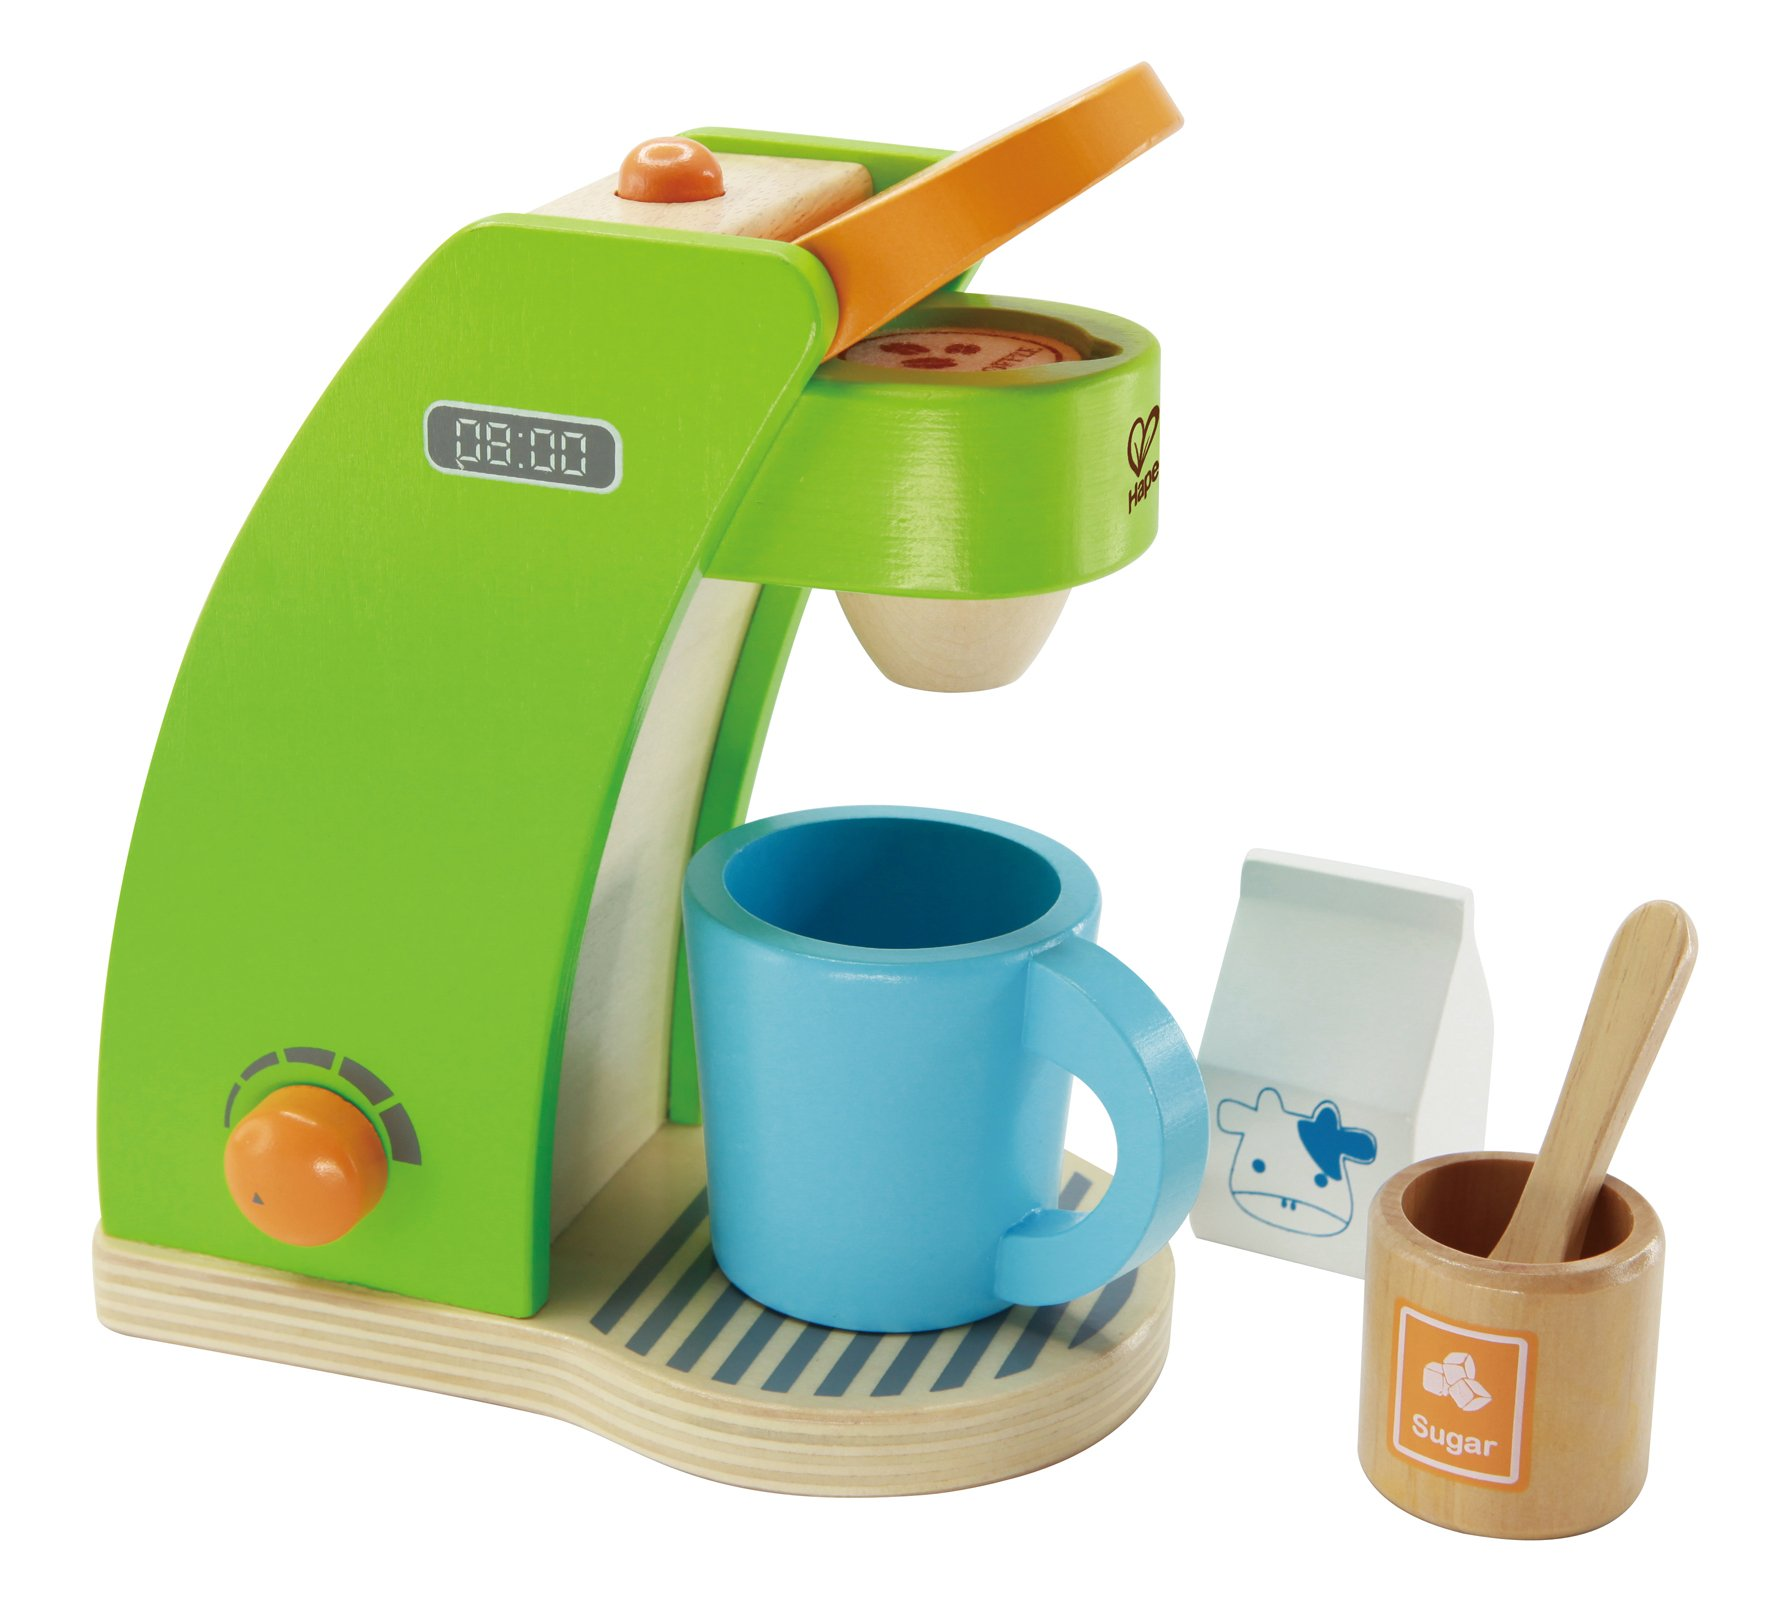 Hape Kid's Coffee Maker Wooden Play Kitchen Set with Accessories